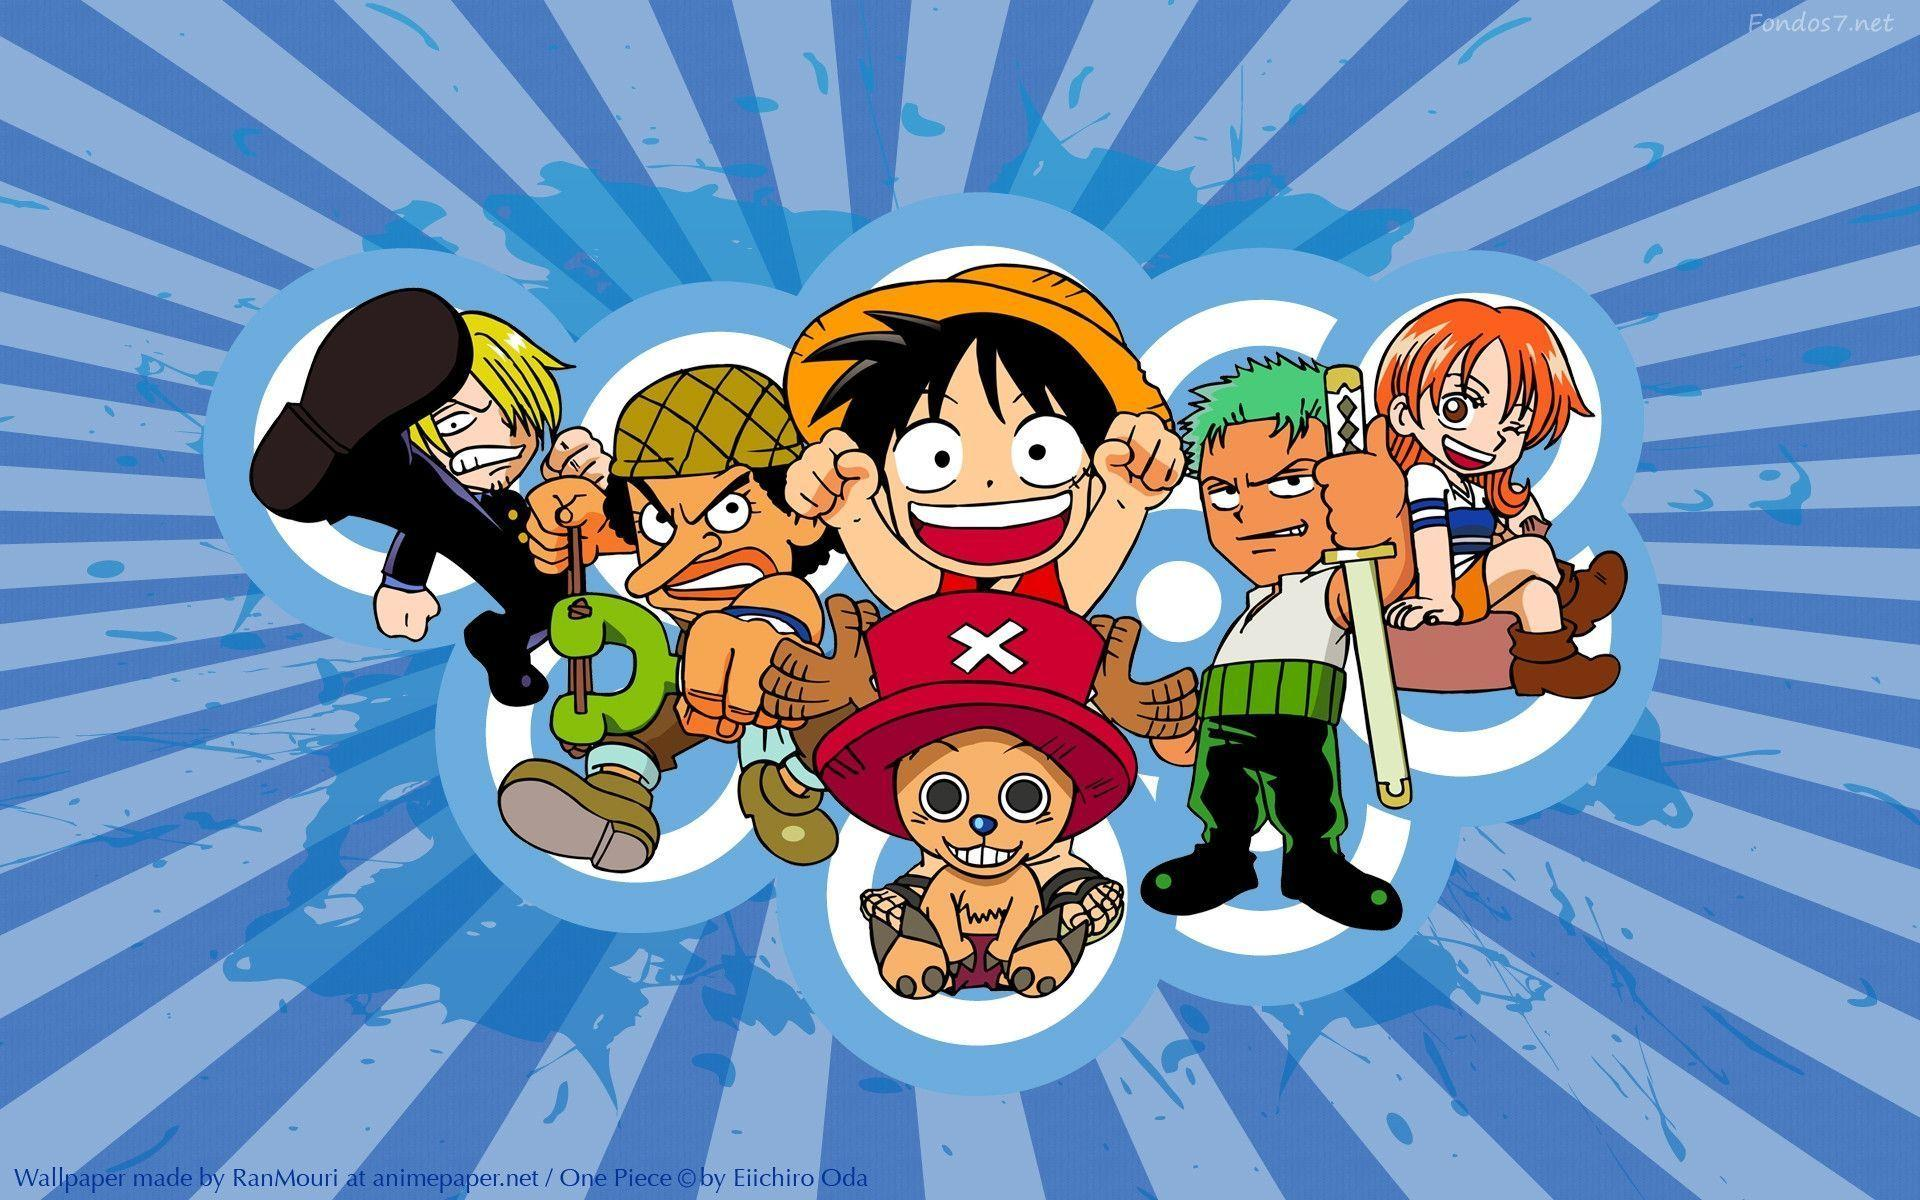 Wallpaper hd ini tentang one, piece, anime, chibi, simple, background, white, backgroundone, piece, cute, wallpaper, dimensi wallpaper asli adalah 1920x1200. One Piece Wallpapers 2015 - Wallpaper Cave